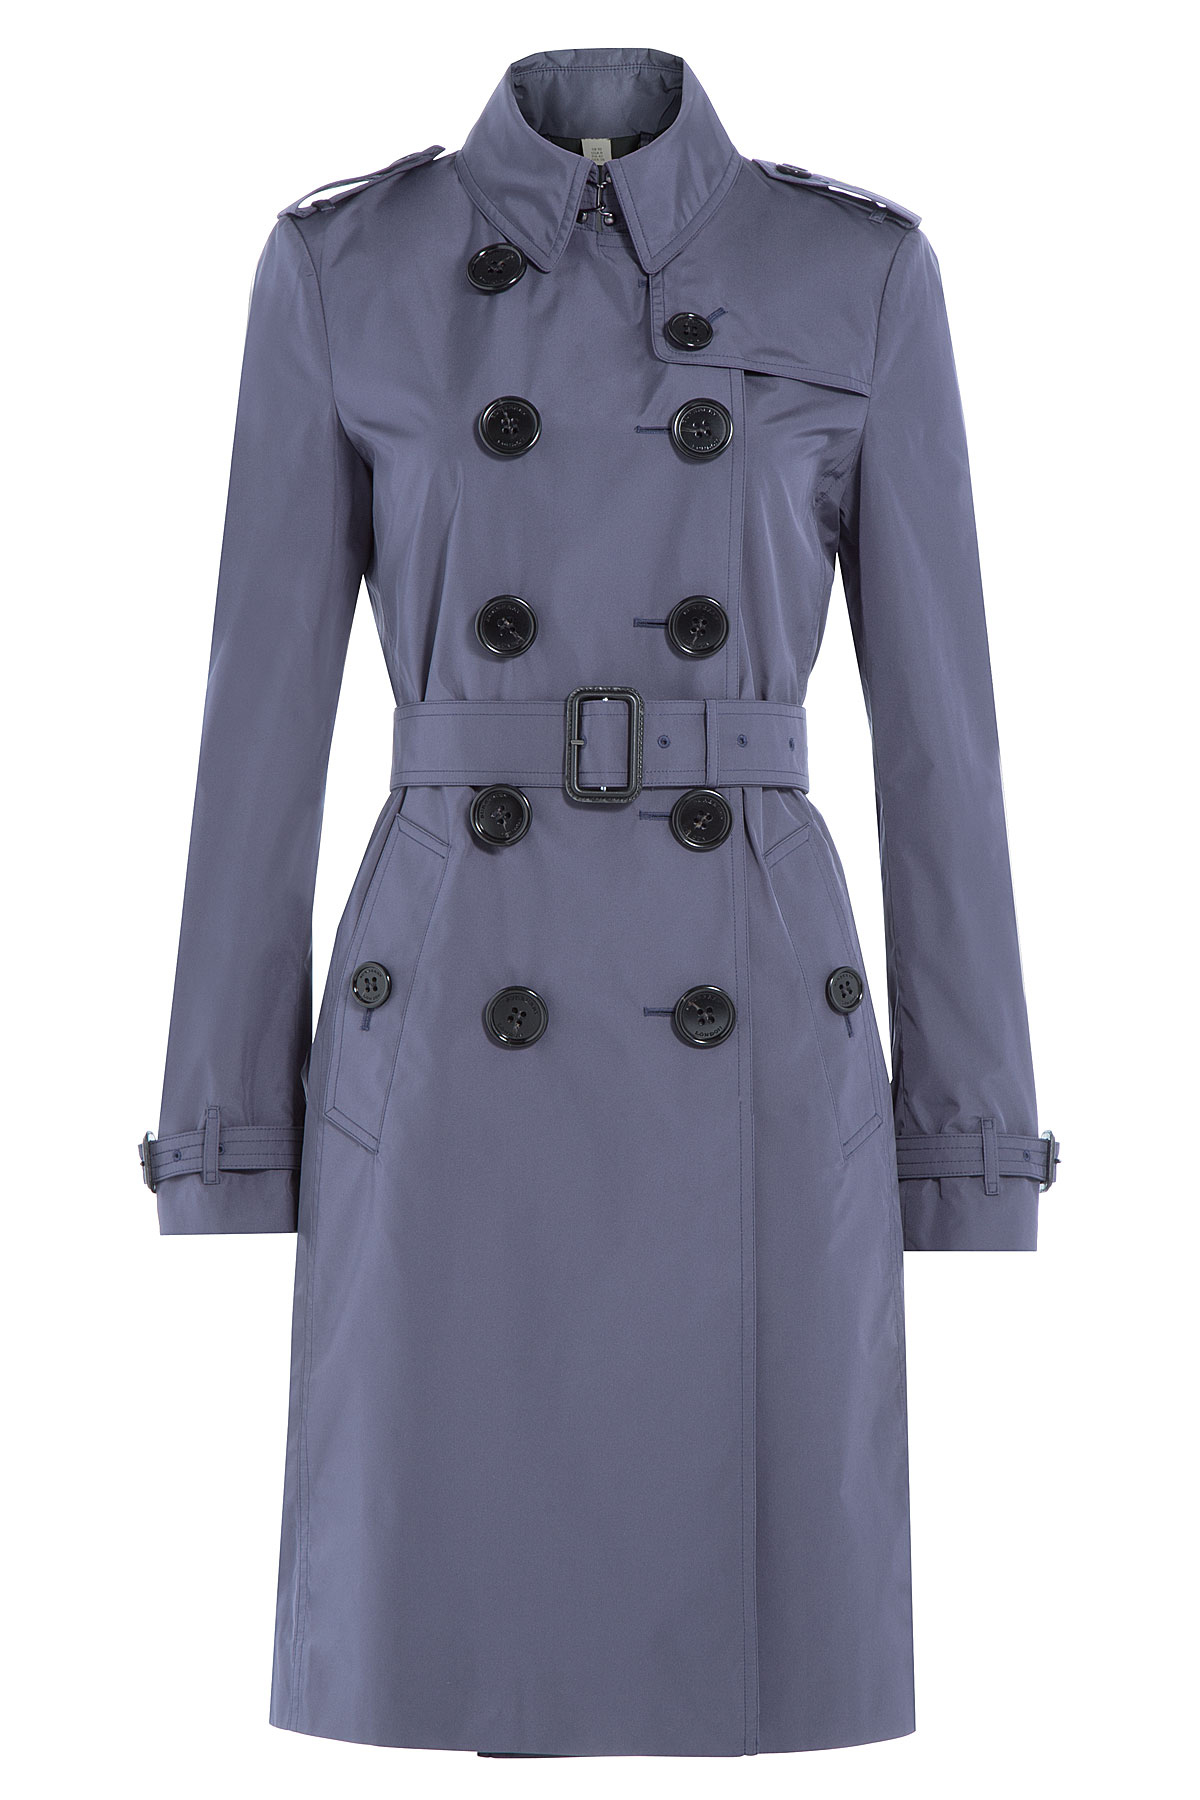 Blue Burberry trench coat - indigo slate charcoal double breasted